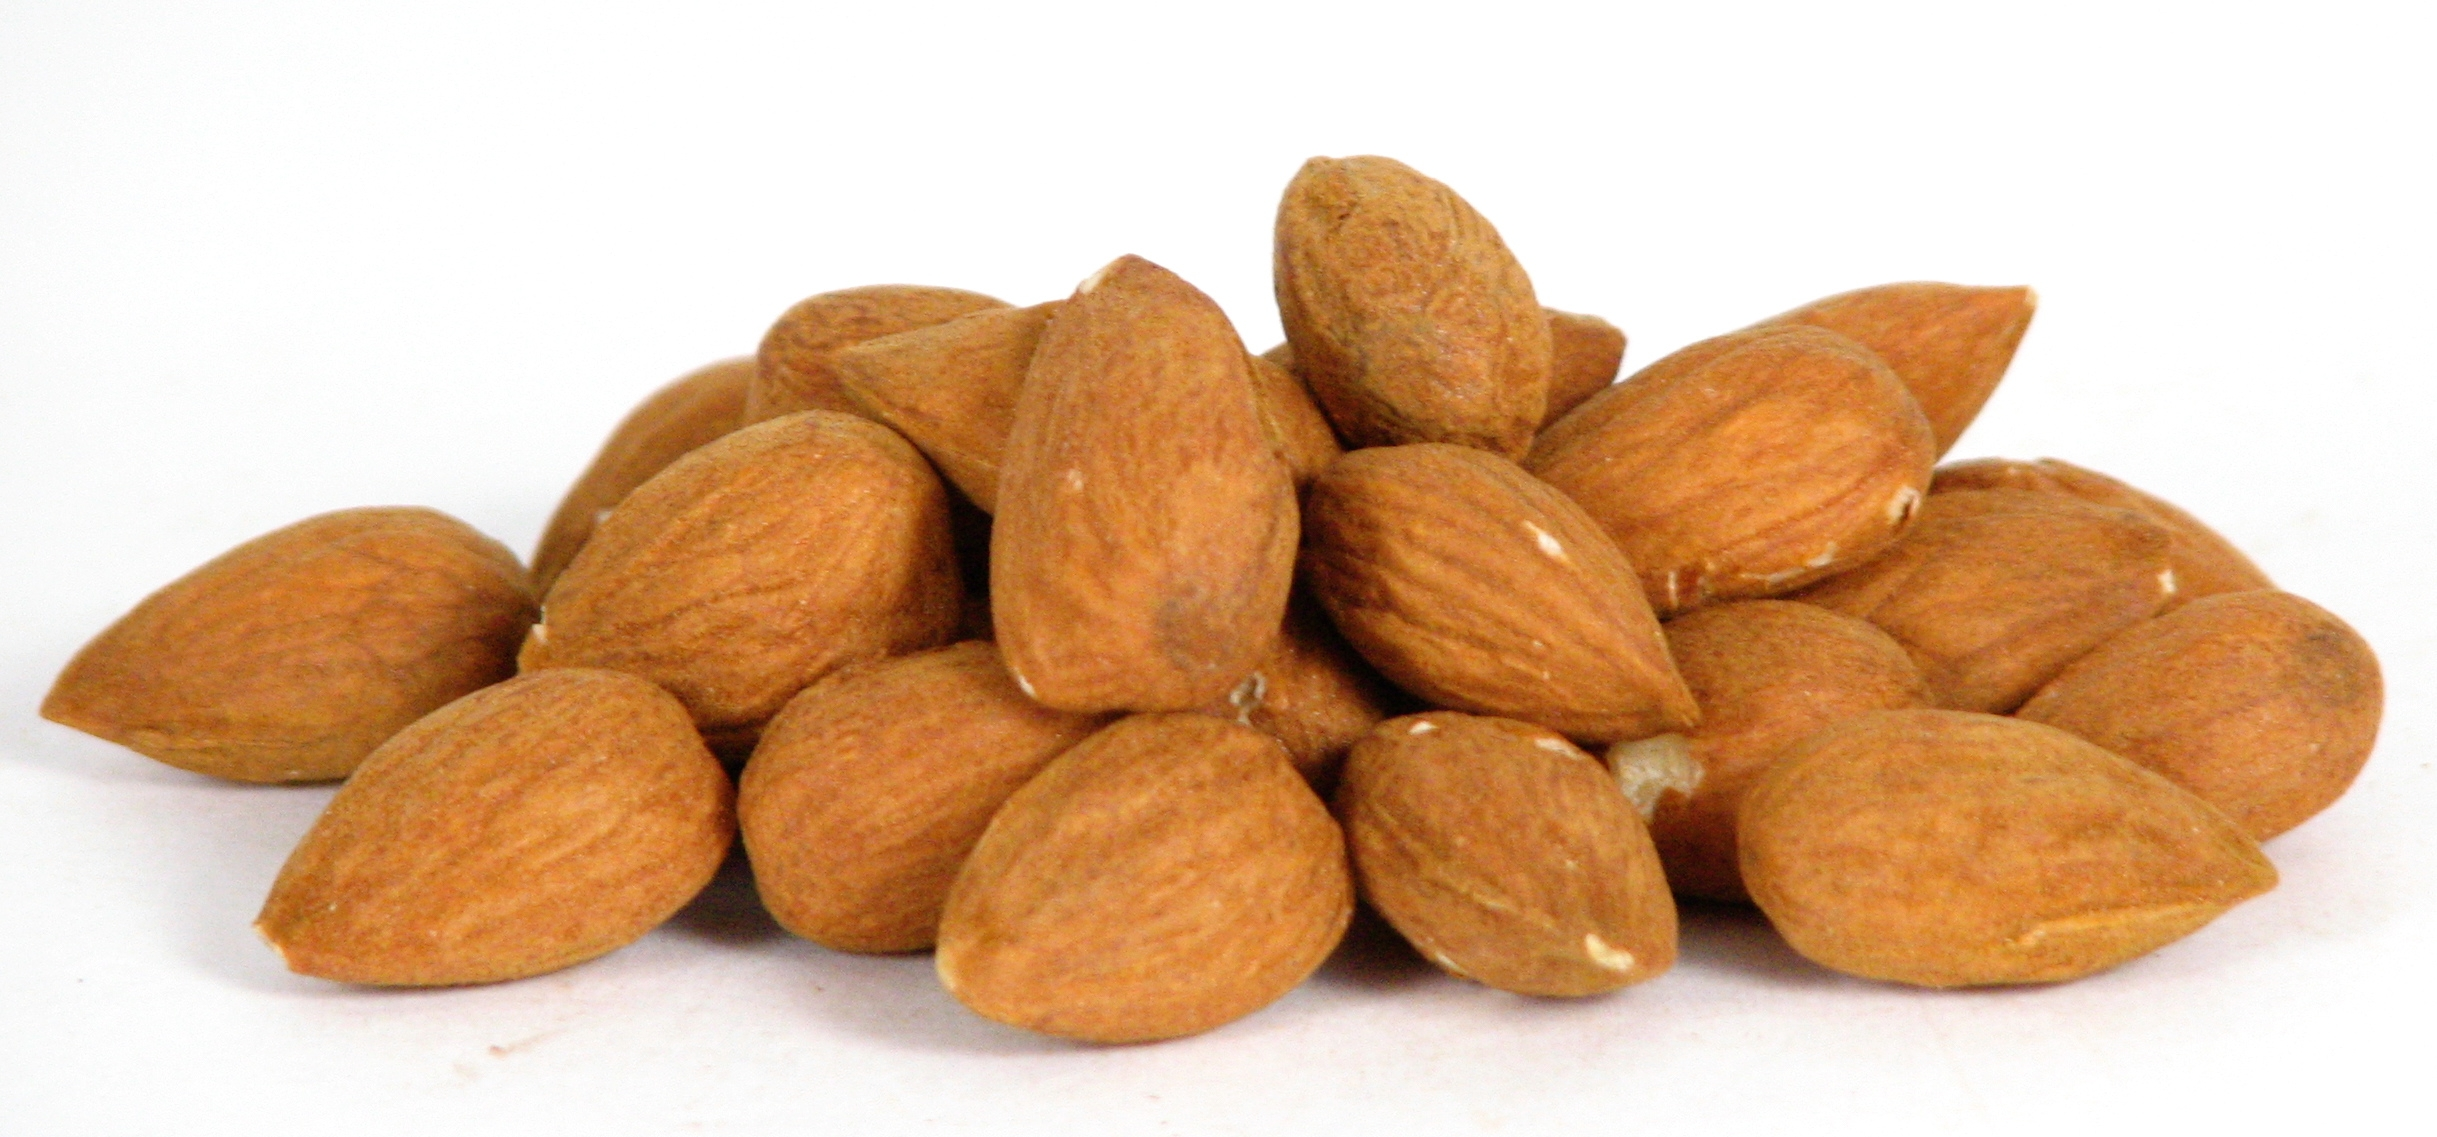 Images of Almond   2437x1137